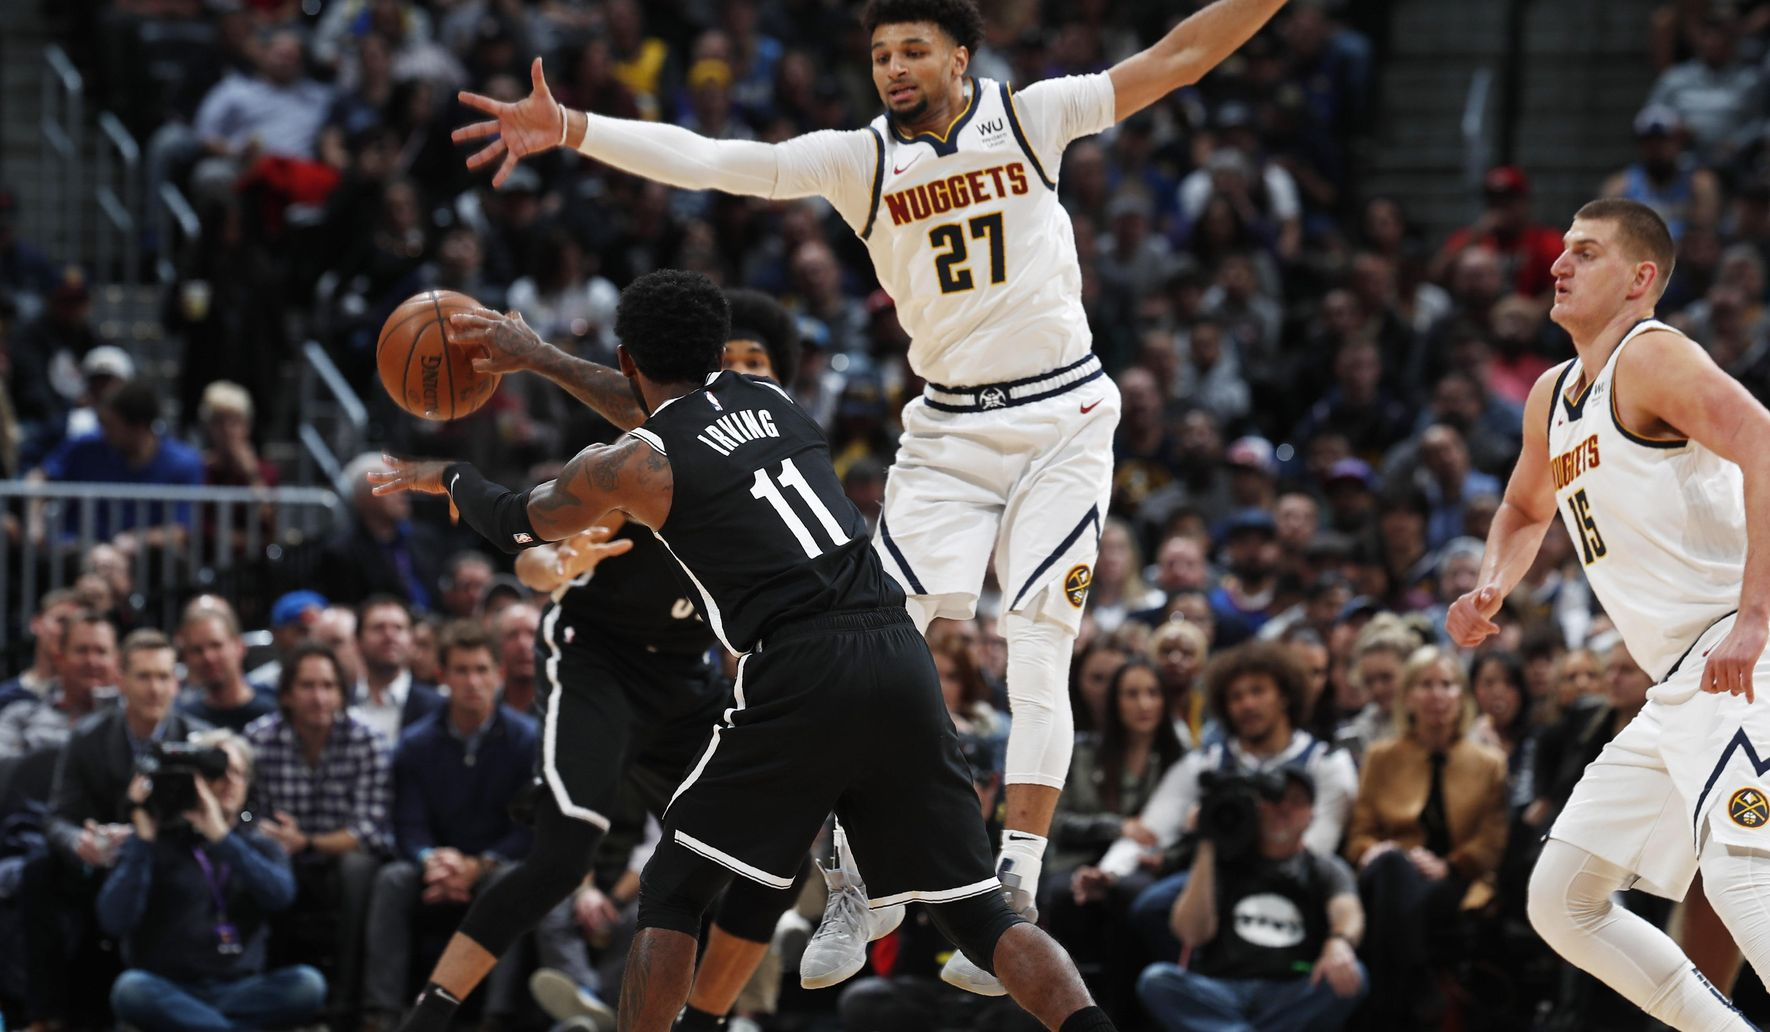 Nets_nuggets_basketball_36657_c0-433-4366-2978_s1770x1032